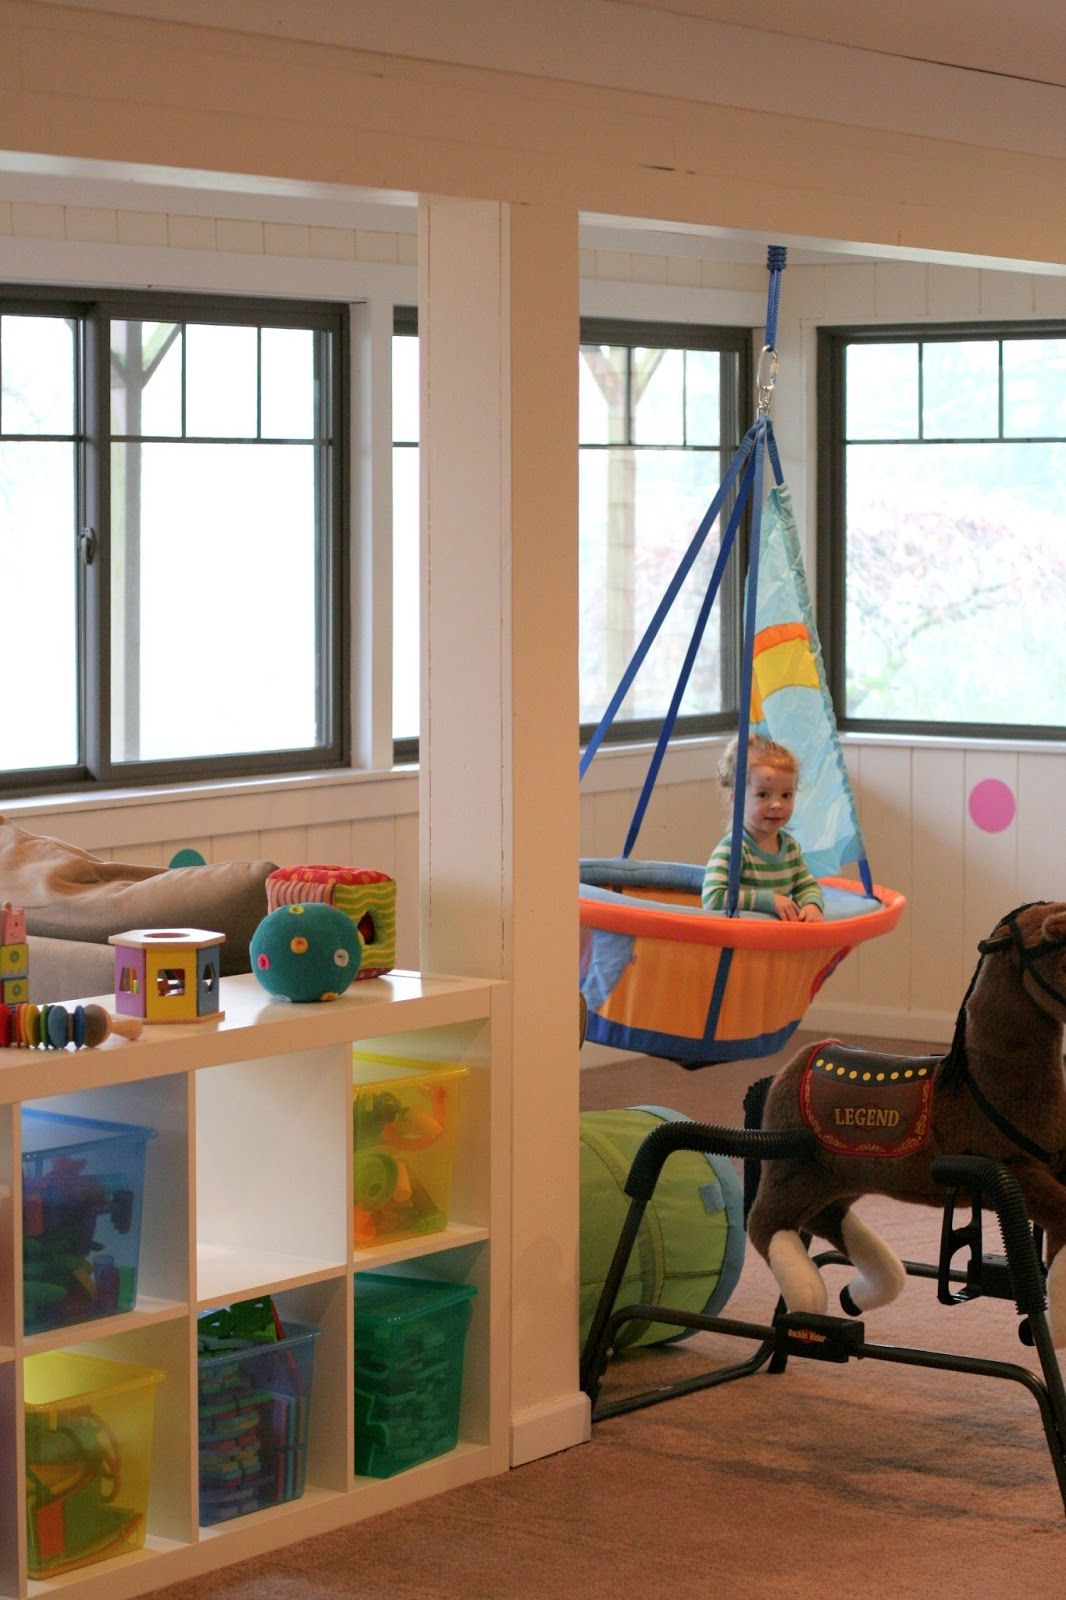 This is the coolest play room ever